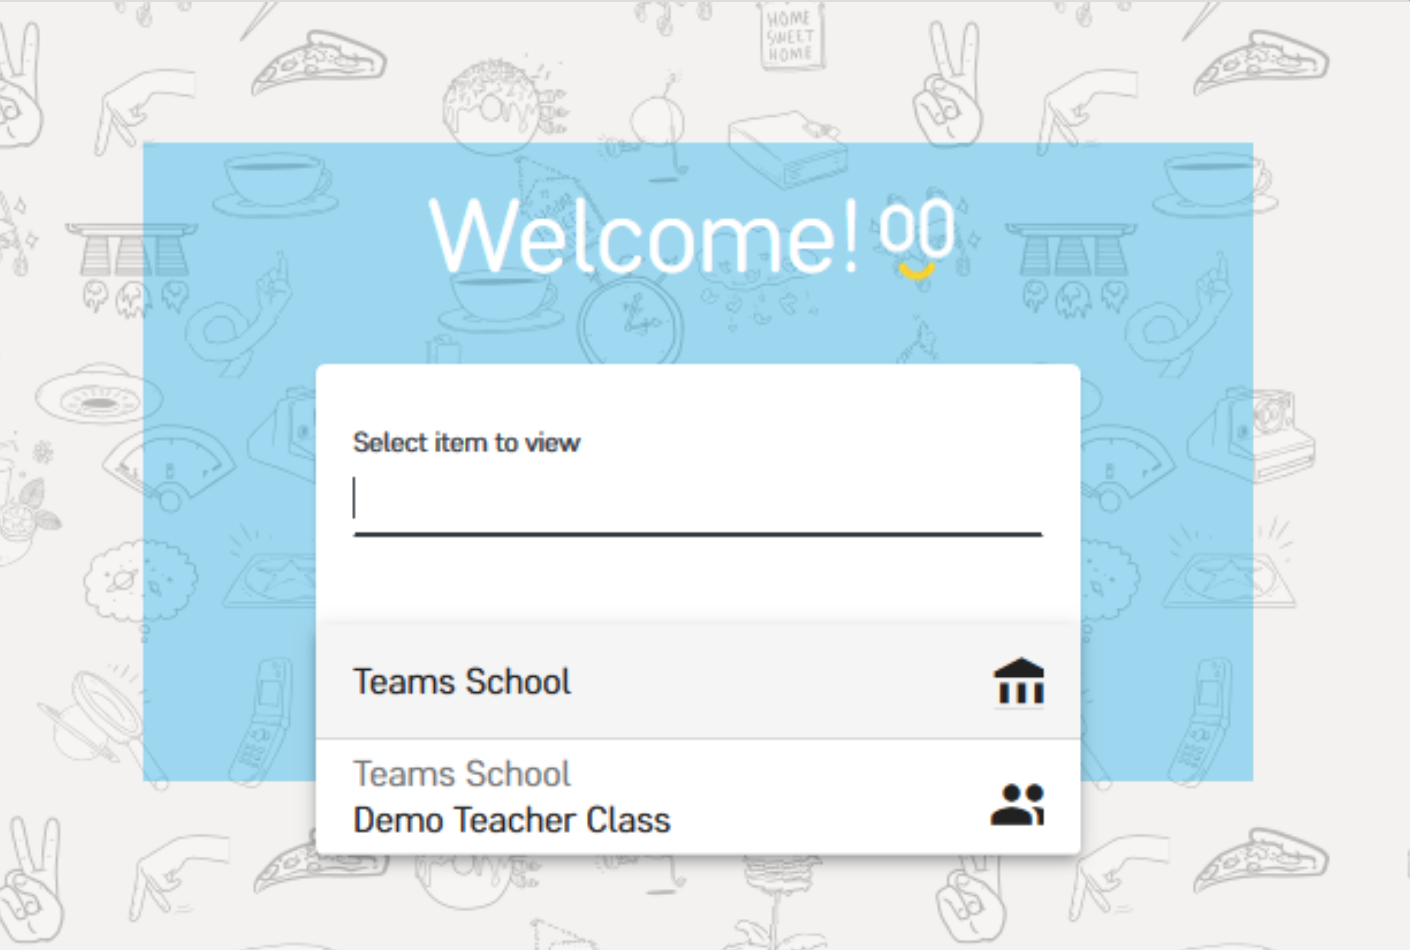 Step one when Adding Students to School Day on Microsoft Teams